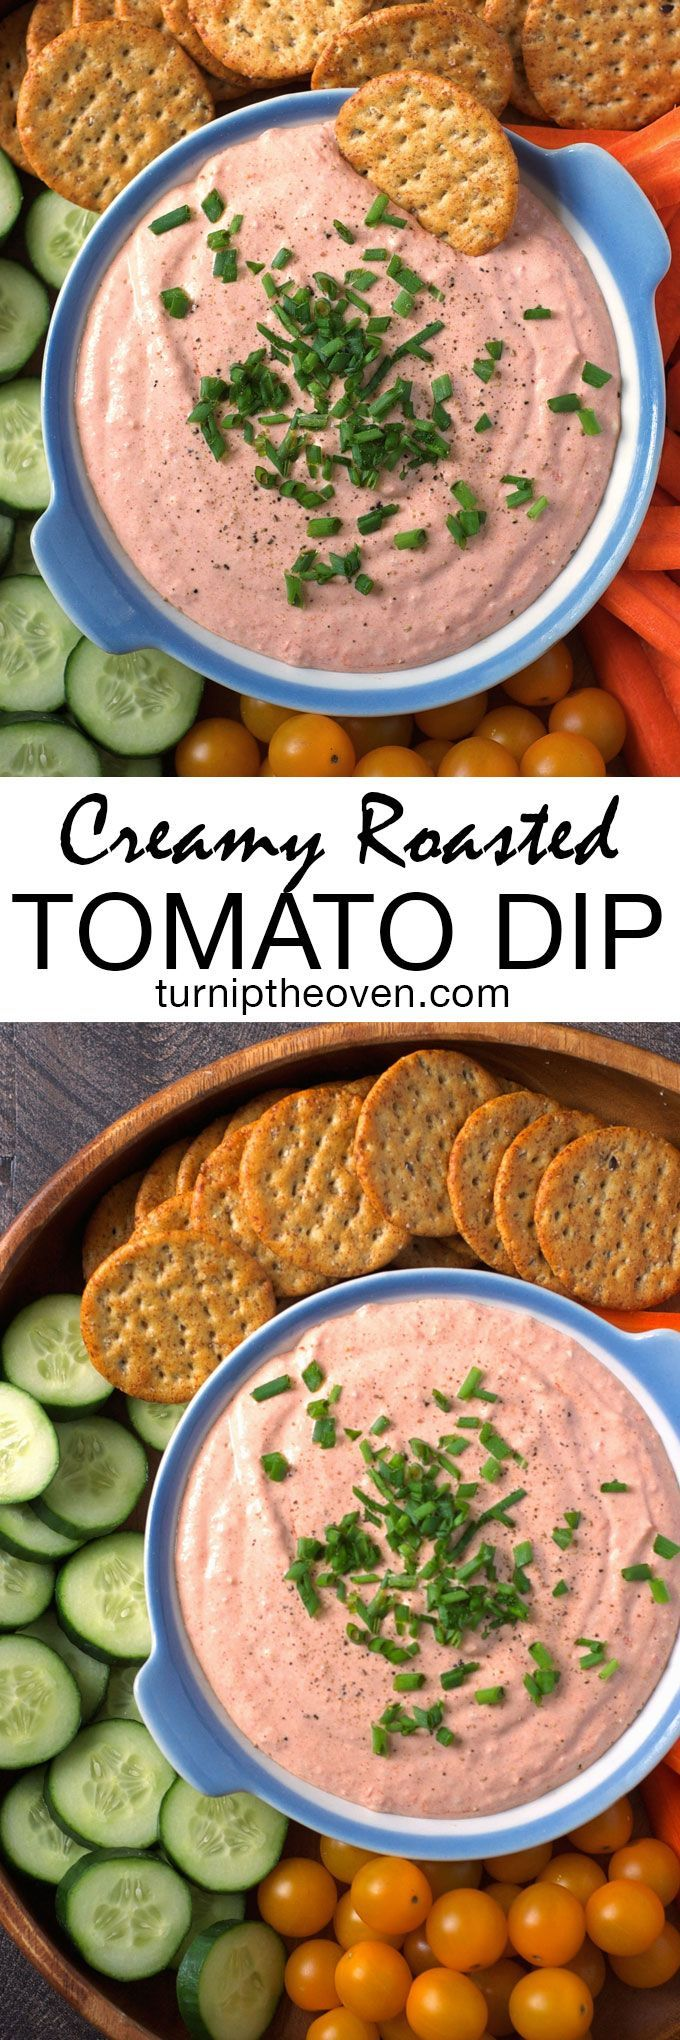 This creamy roasted tomato dip is the perfect quick and simple make-ahead party appetizer! Vegetarian, gluten-free, and made with only real-food ingredients, it's perfect with crackers or veggies, and does double duty as a spread for sandwiches.